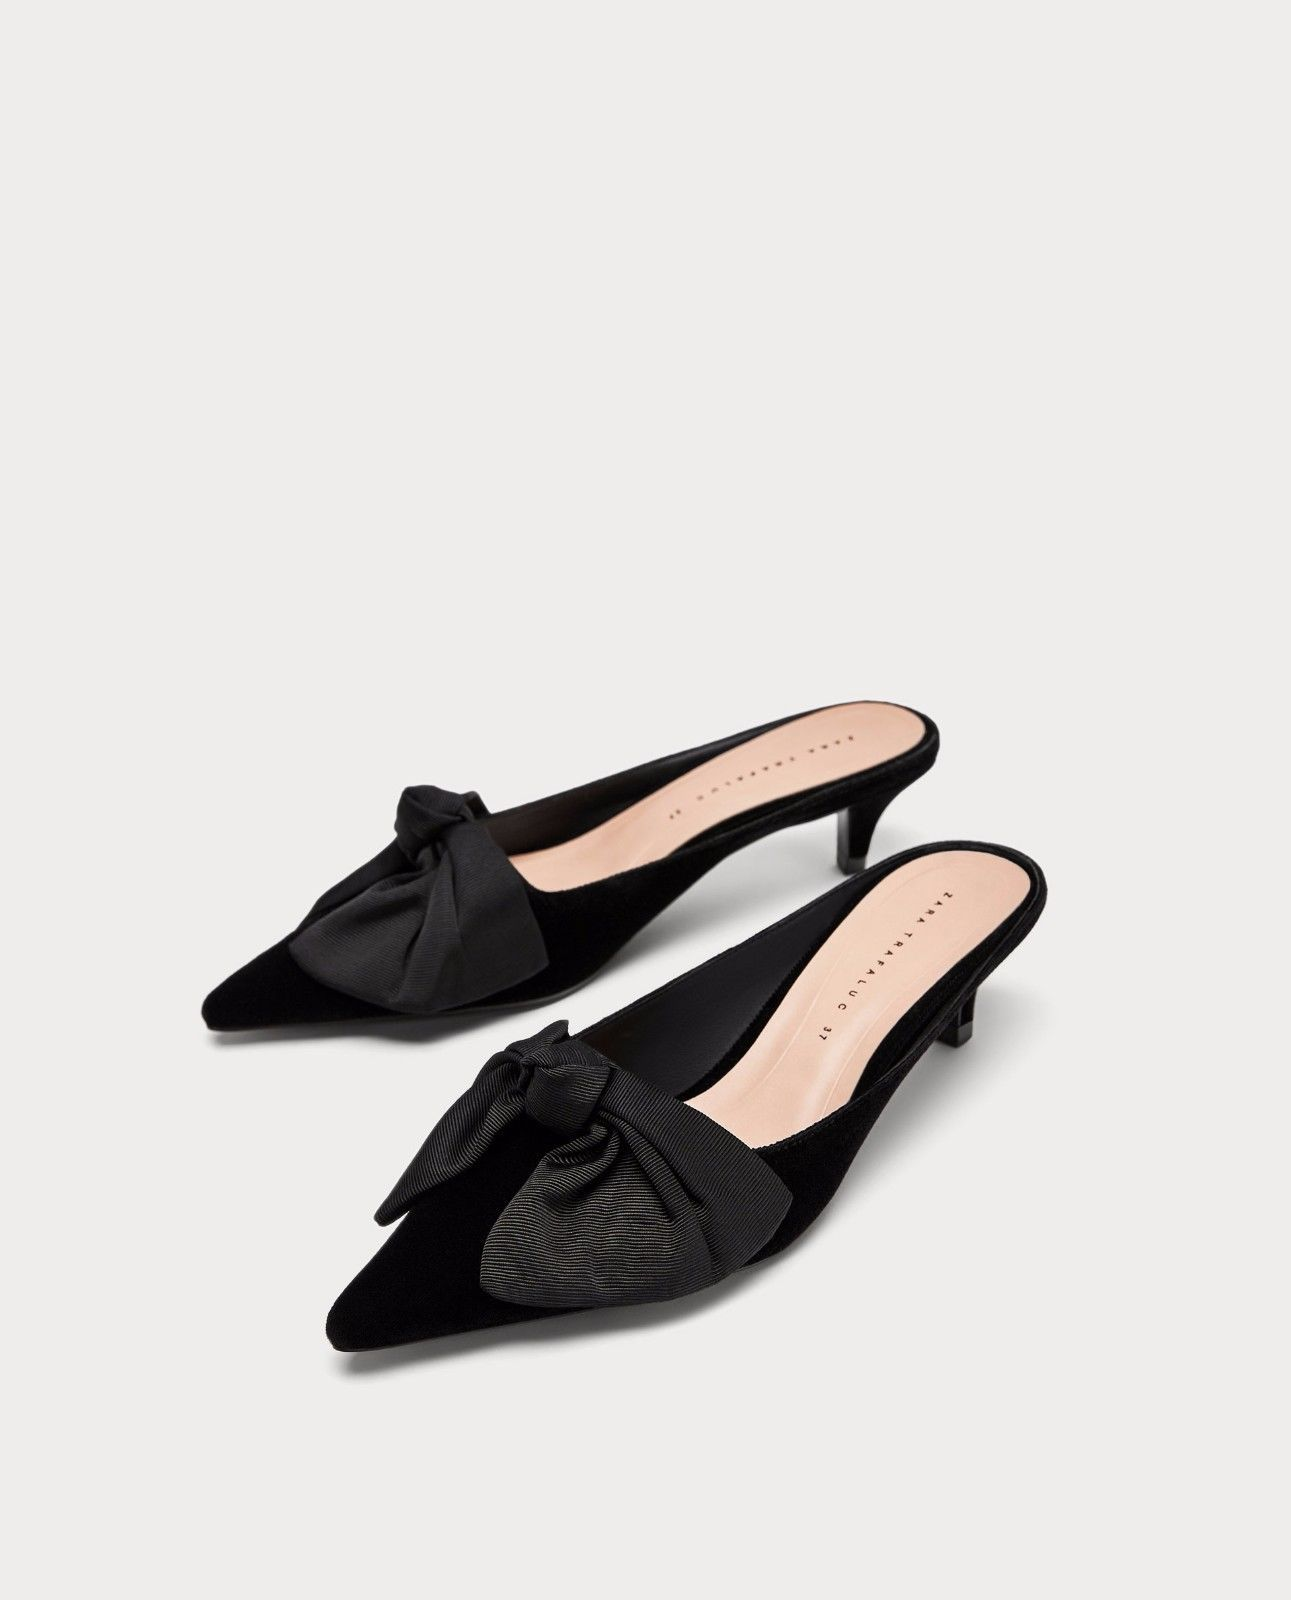 Zara New Kitten Heel Mules With Bow Black 7236 201 Kitten Heels Heels Bow High Heels